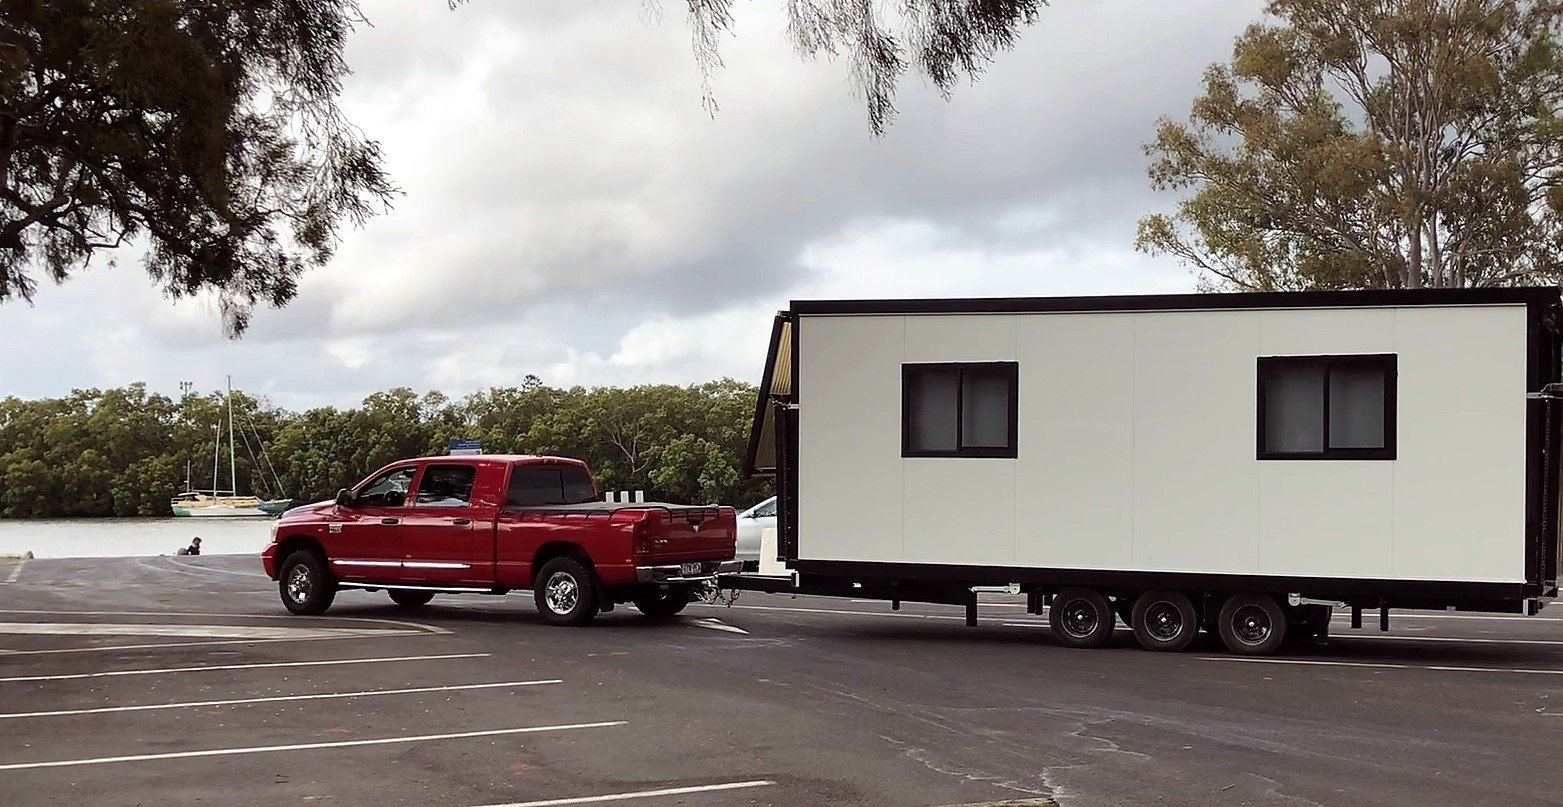 2bed with red truck_1.1.1